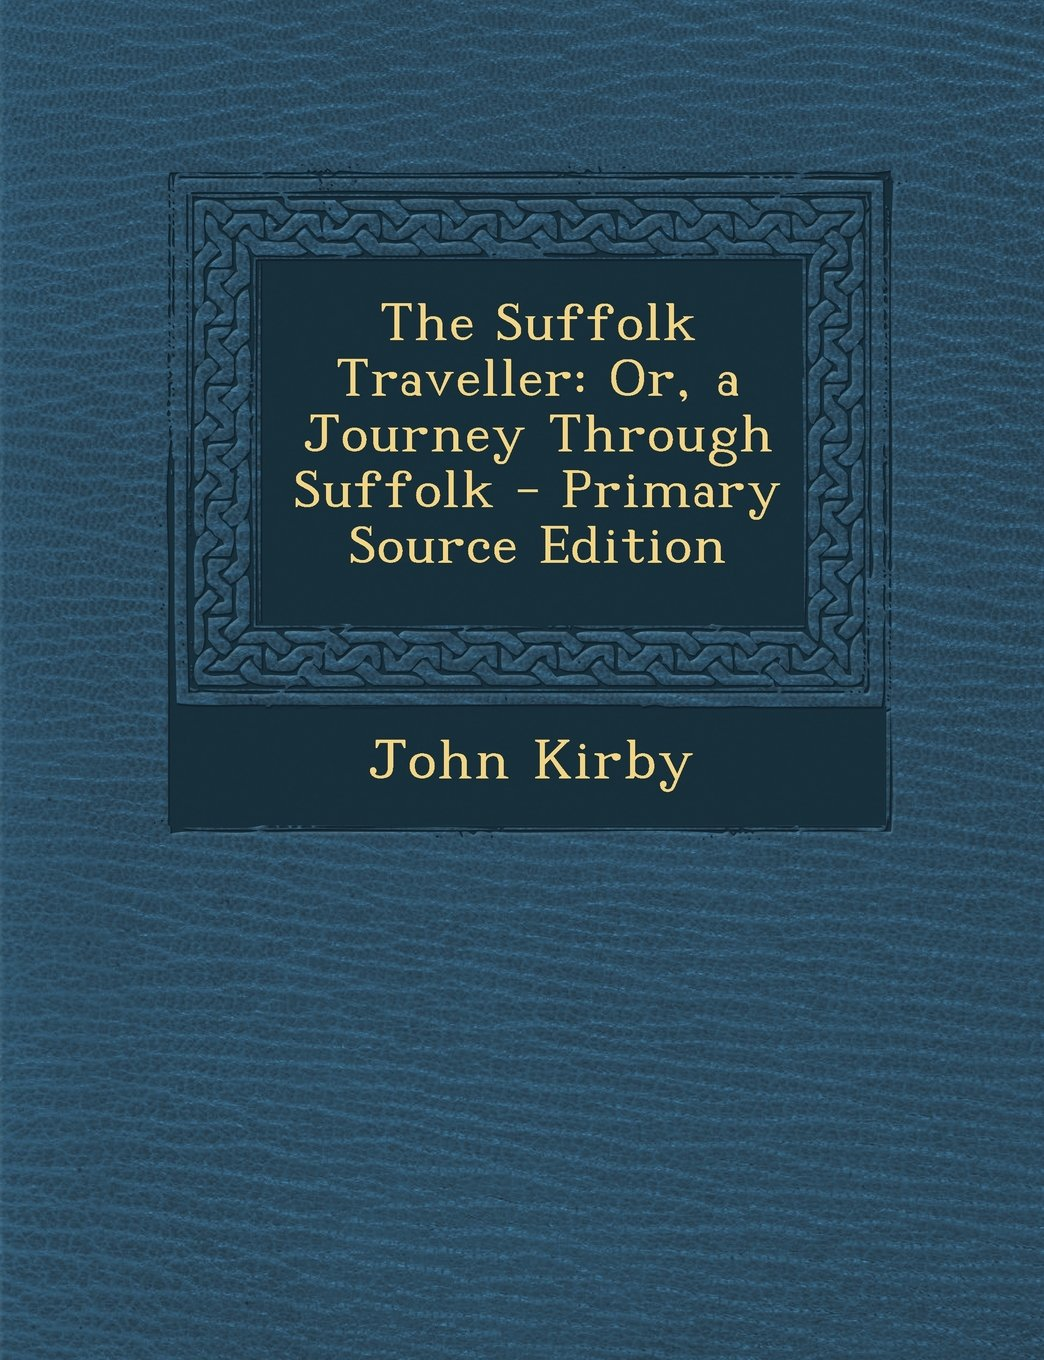 Read Online The Suffolk Traveller: Or, a Journey Through Suffolk - Primary Source Edition ebook